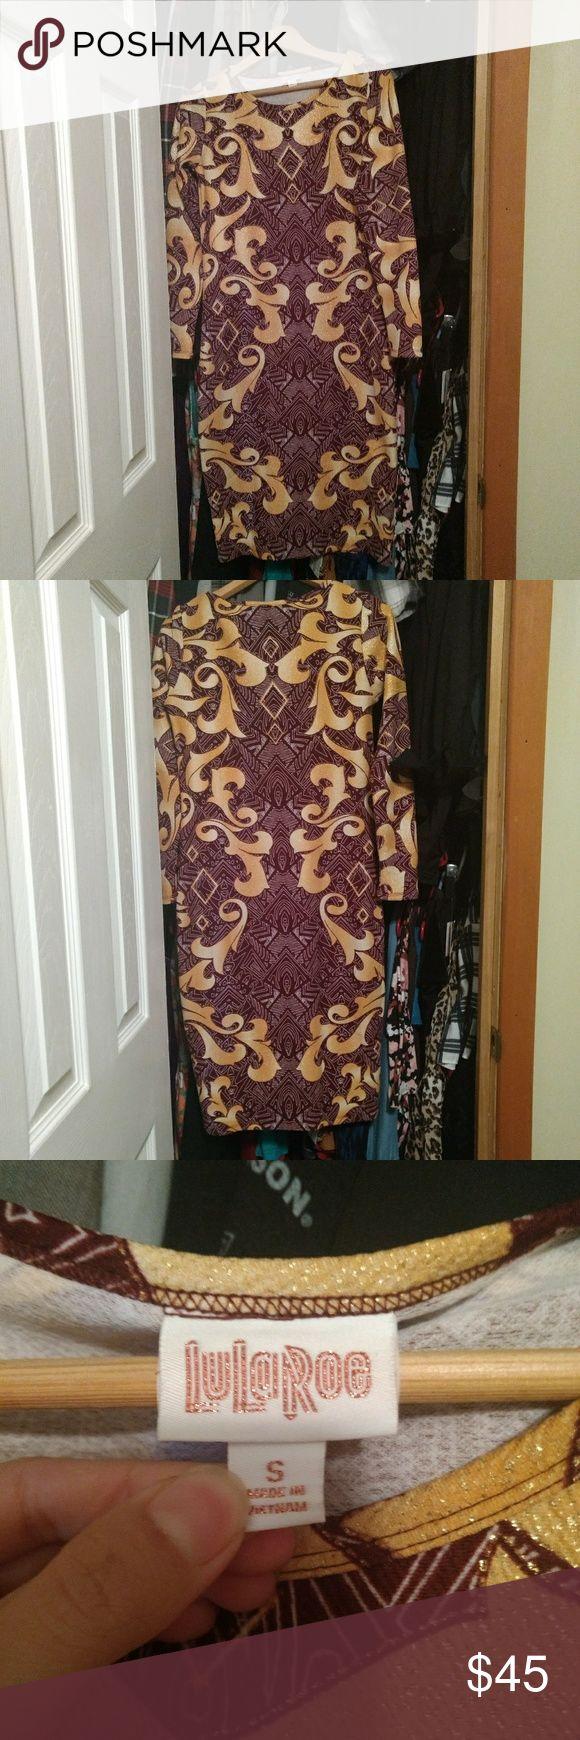 LulaRoe Debbie Worn once!  (Pictured) EUC size Small LulaRoe Elegant Debbie.  It's details hug every curve & give you a brilliant shape!  Gold & sparkly filagree with a brown/burgundy background.  It is stunning! LuLaRoe Dresses Long Sleeve